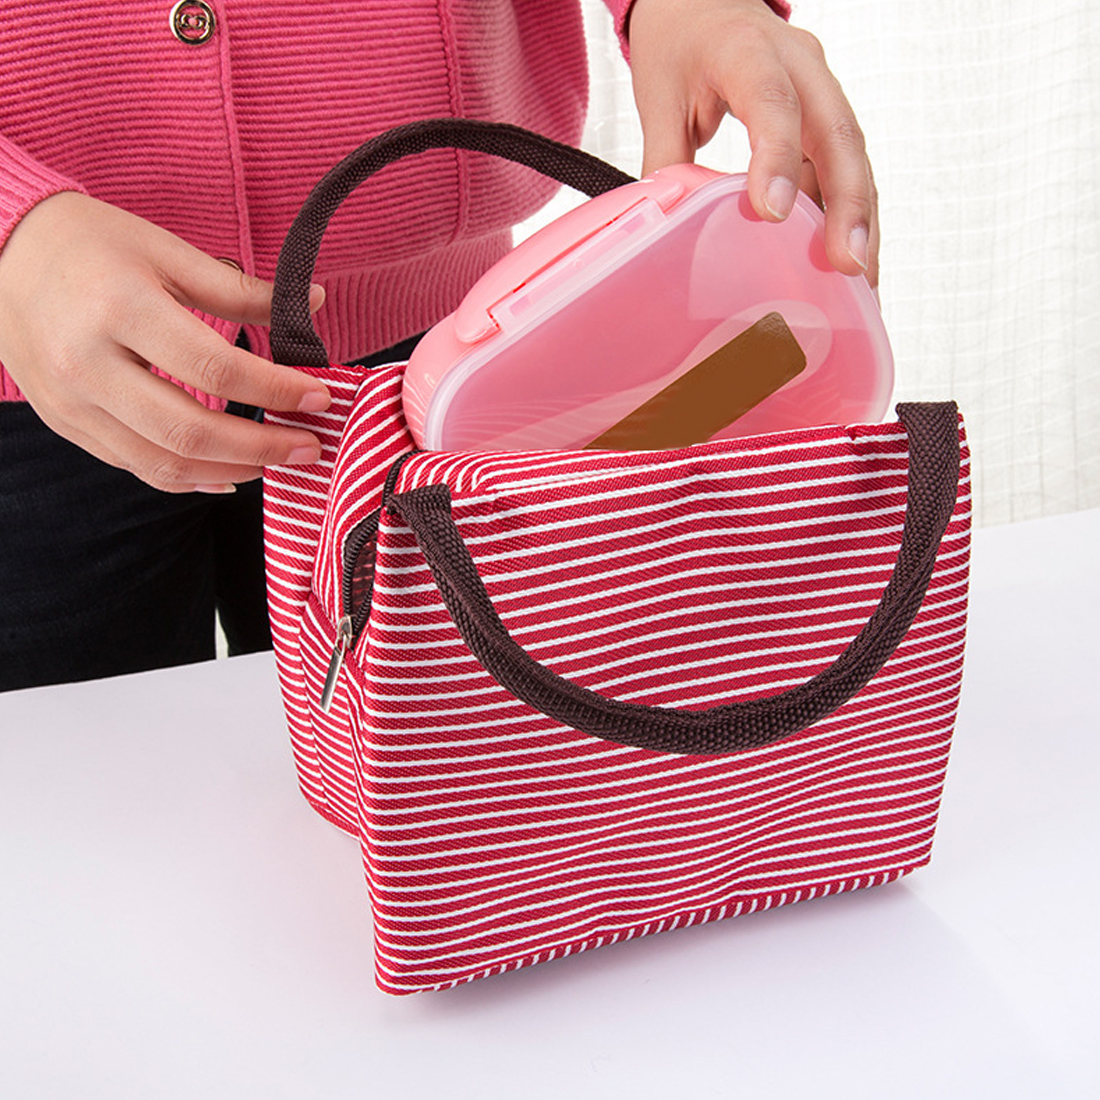 Portable Lunch piknik Bag Canvas Stripe Insulated Cooler Bags Thermal Food Picnic Lunch Bags Kids Lunch Box Bag Tote